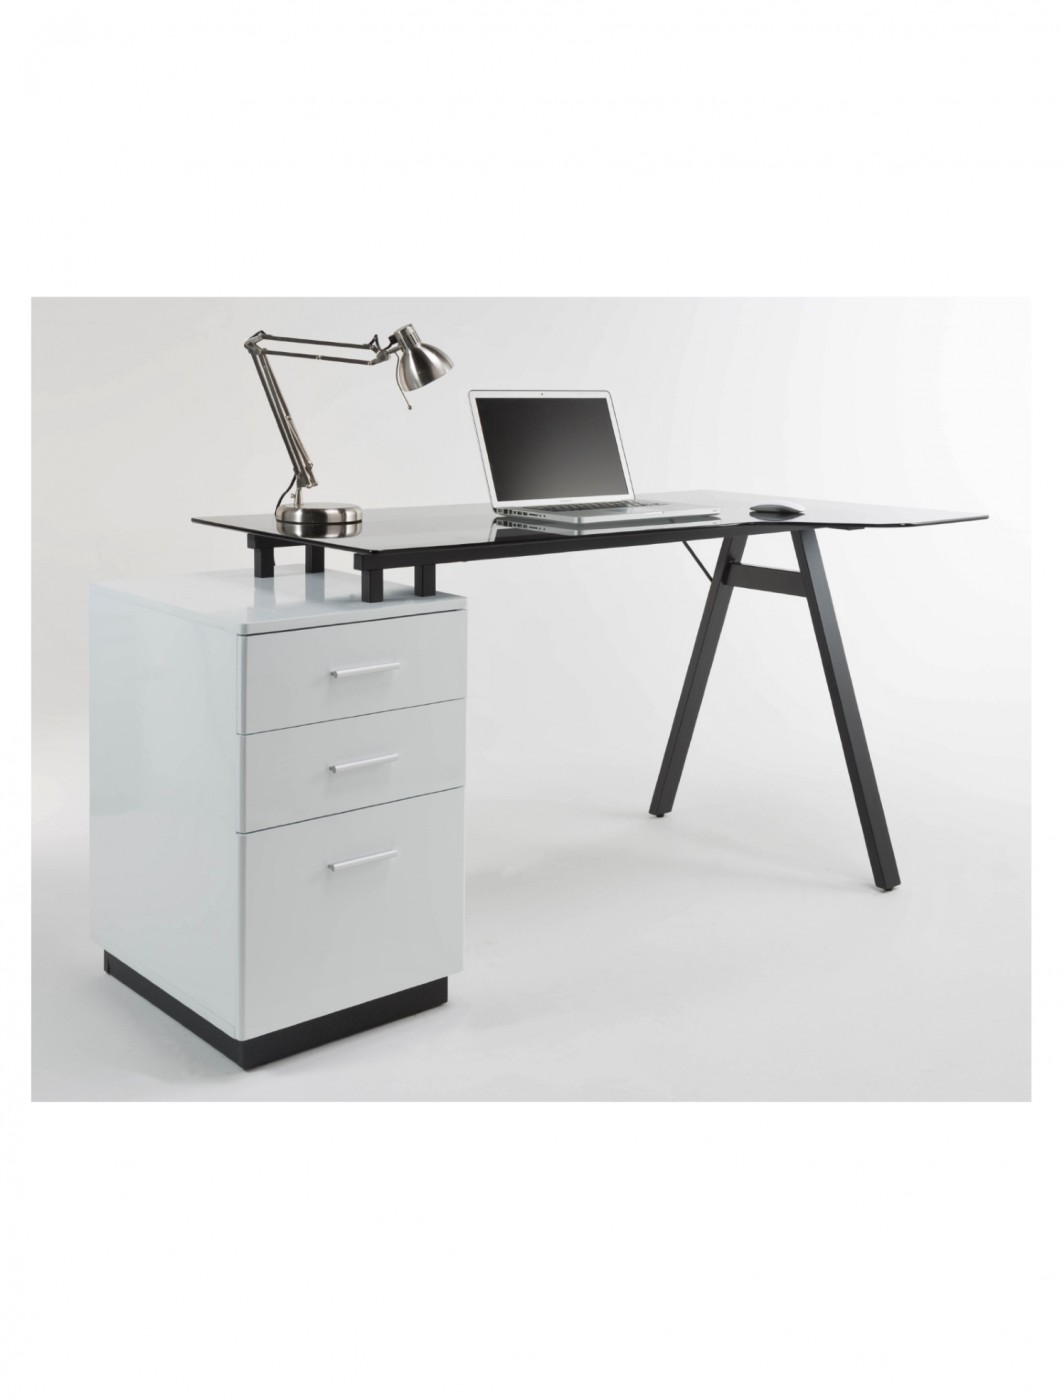 Home Office Furniture Cleveland Ohio Toledo Images - Home ...